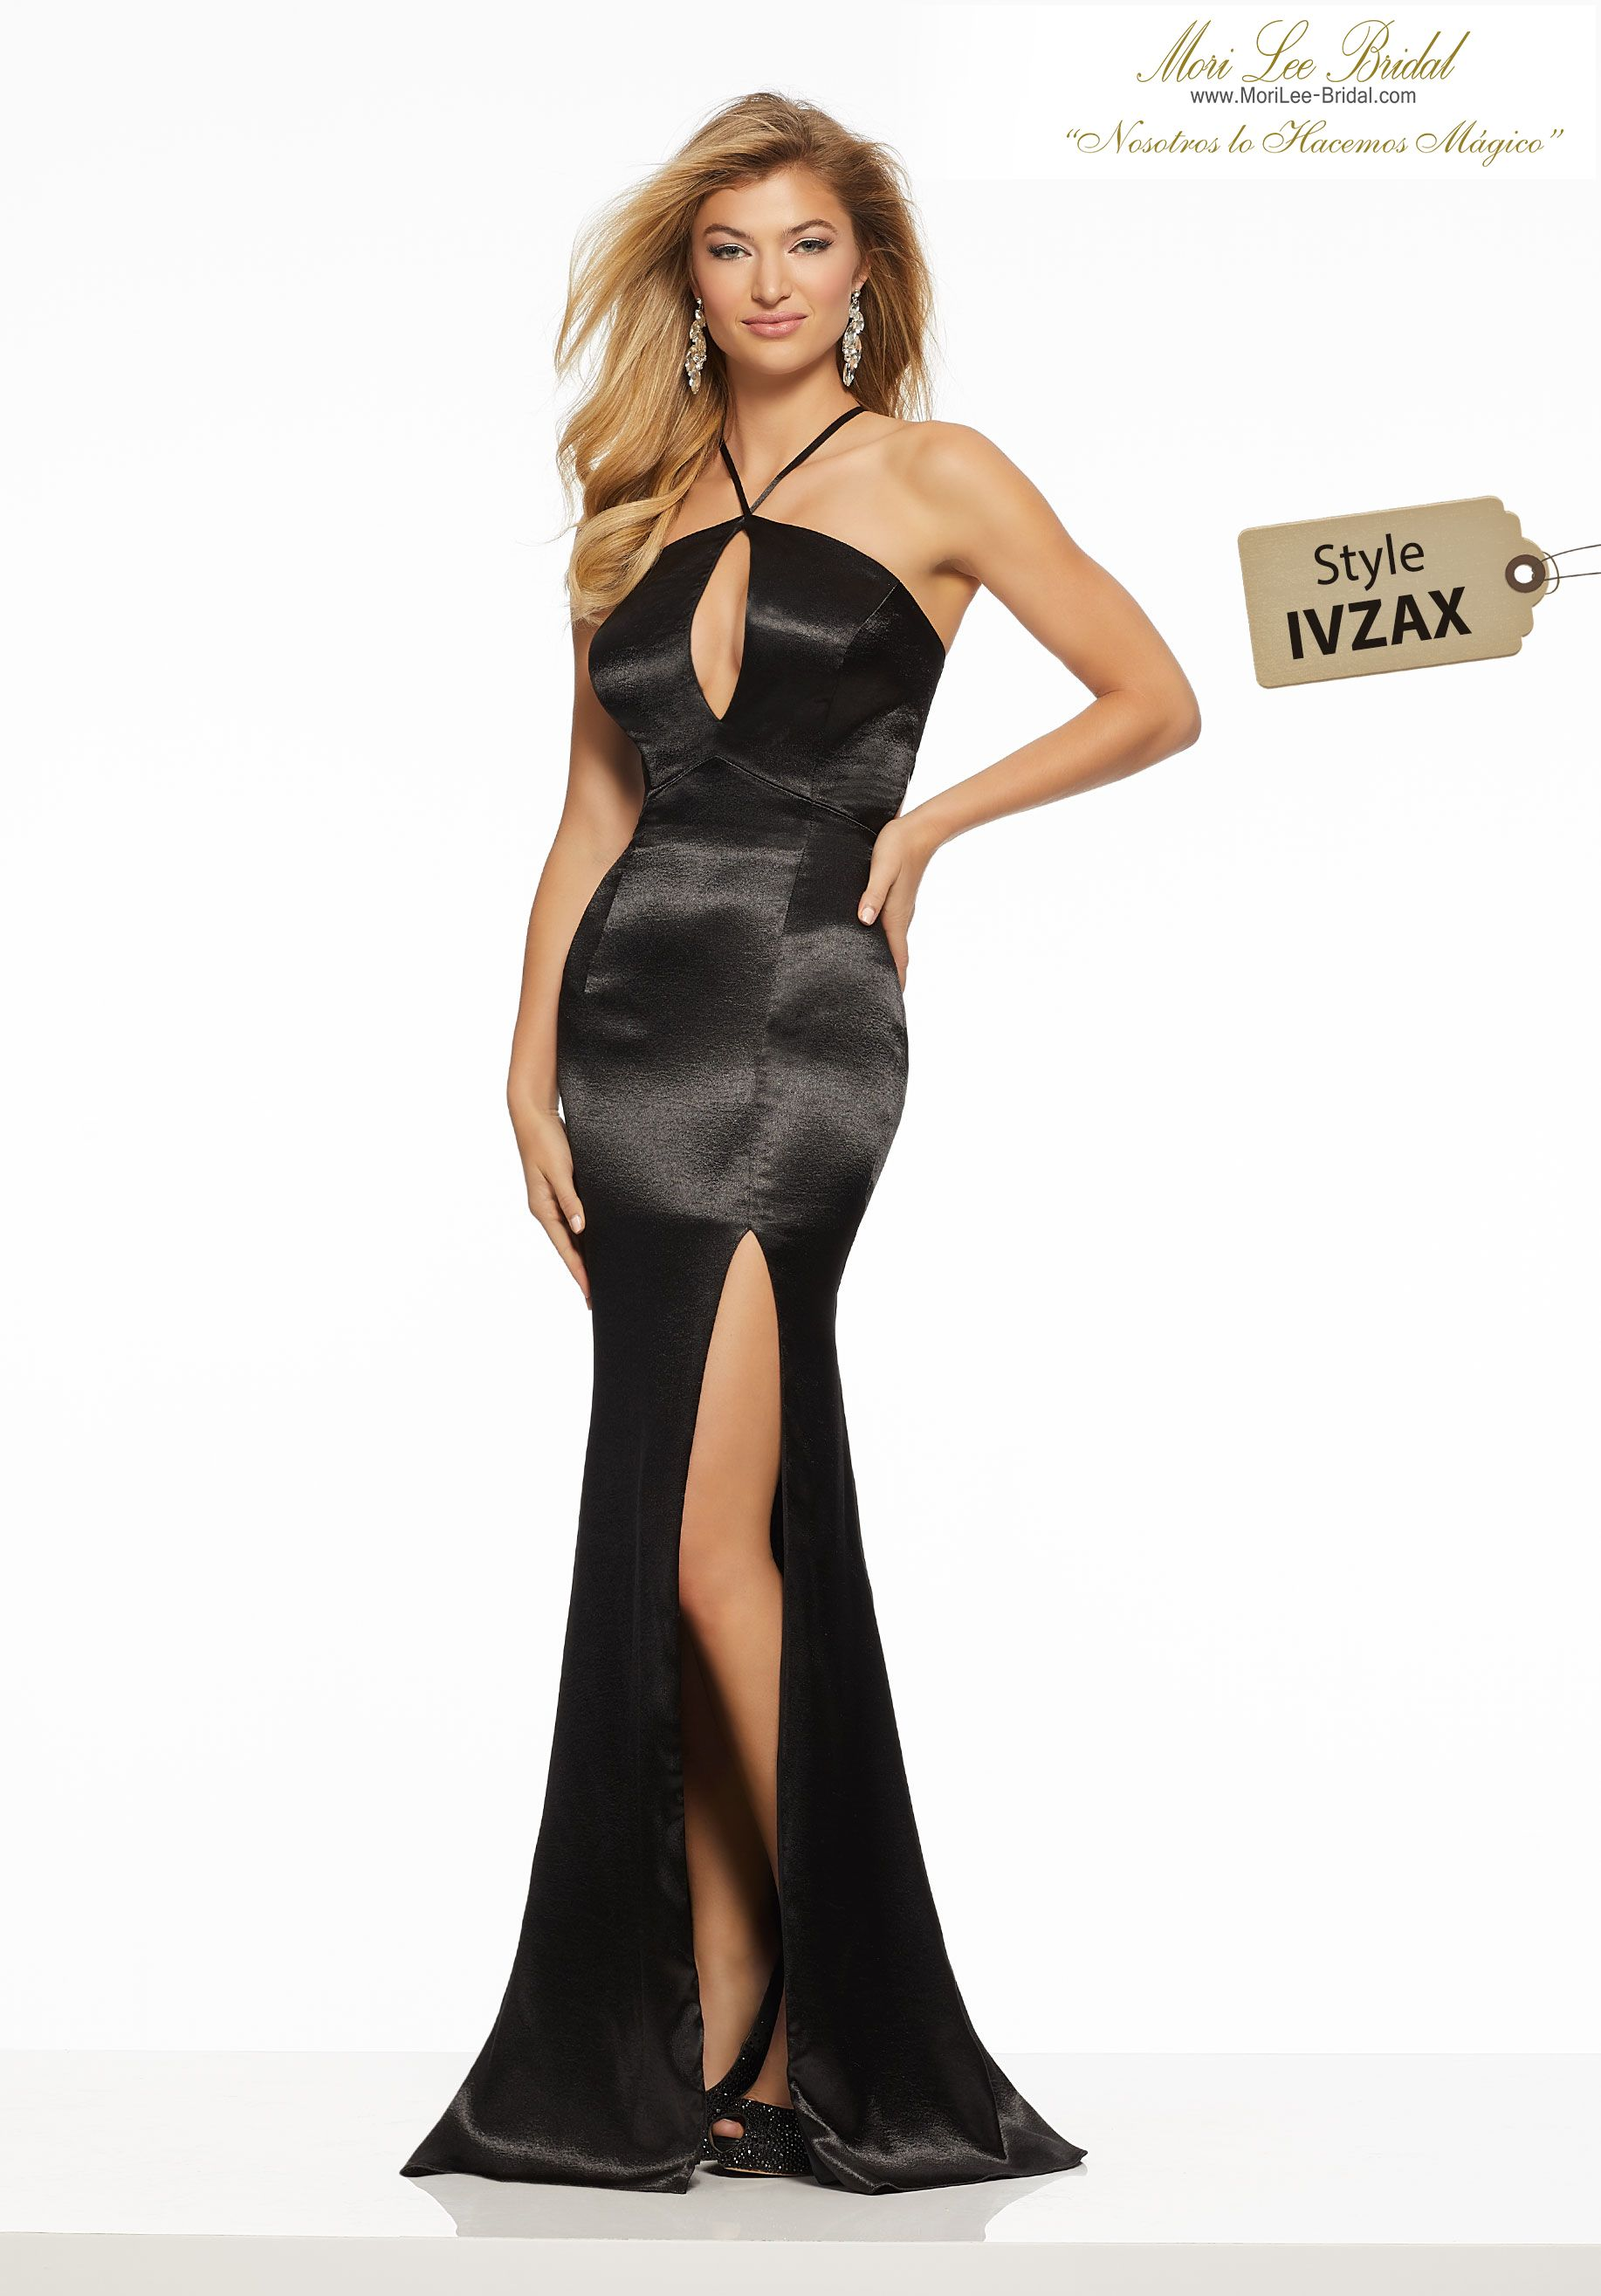 1d7d431aae12 Hammered Satin Sleek Hammered Satin Prom Gown Featuring a High, Keyhole  Neckline and Side Slit